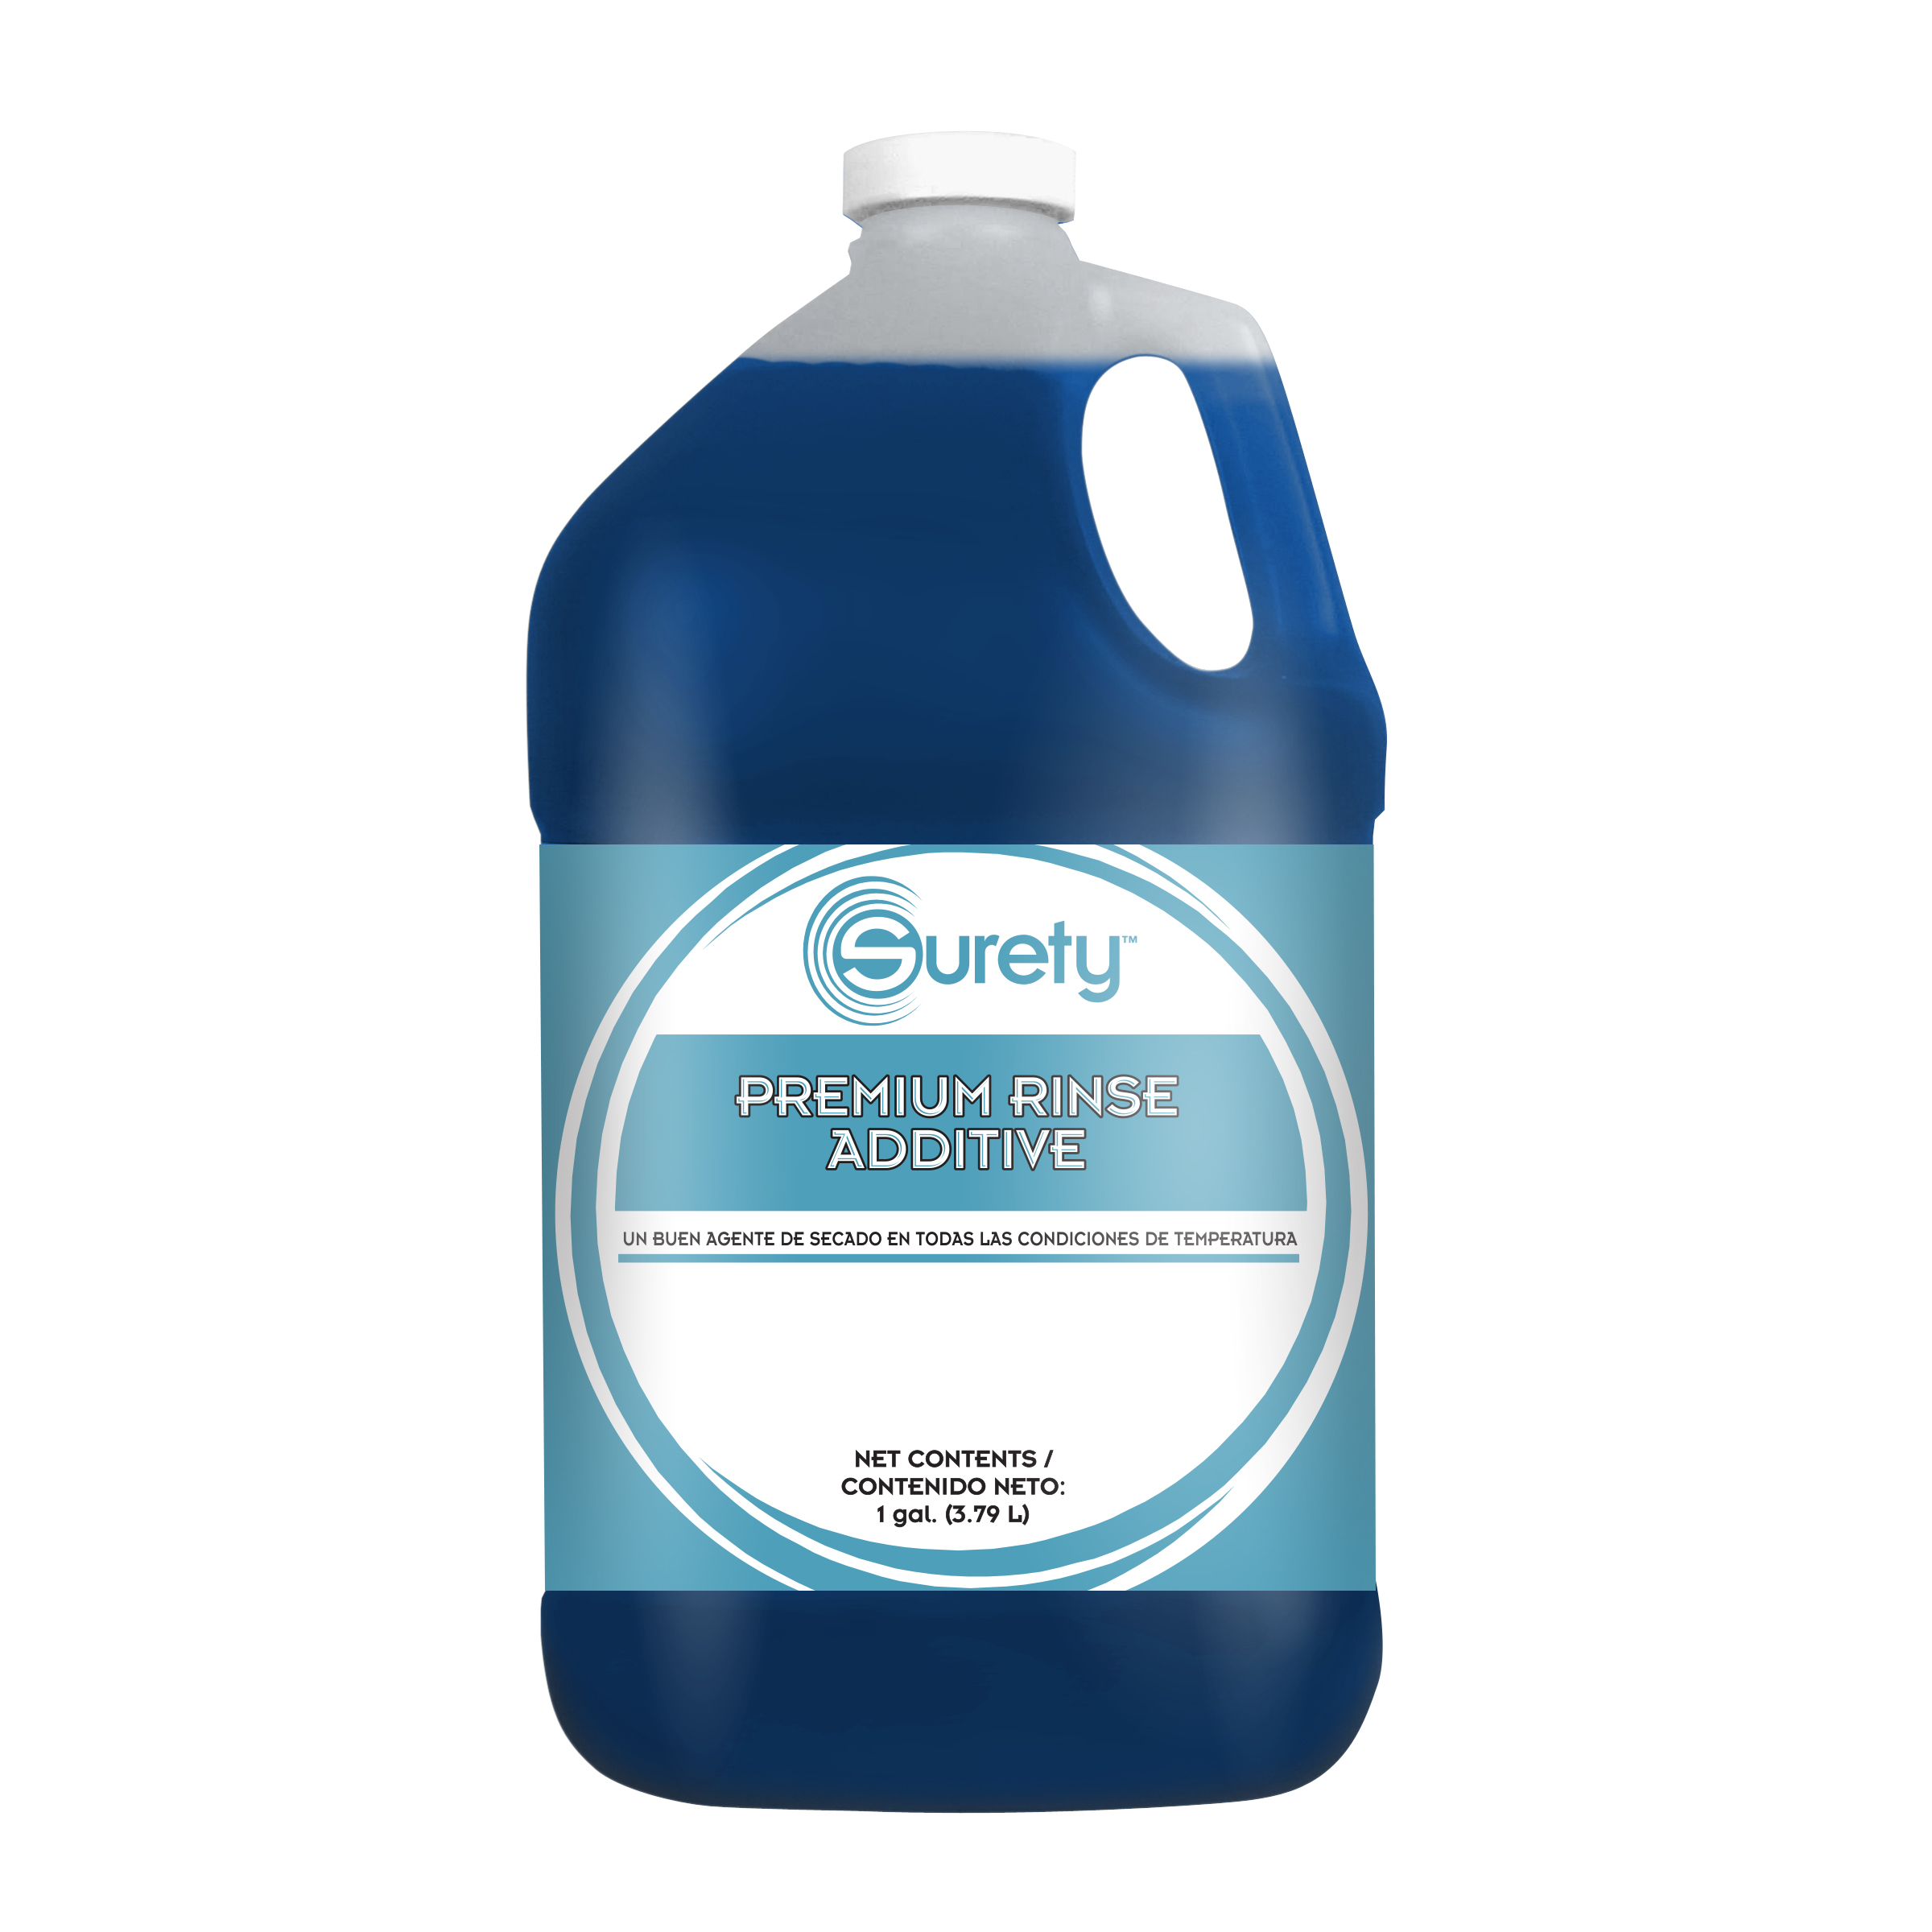 5396139_premium_rinse_additive_1ga